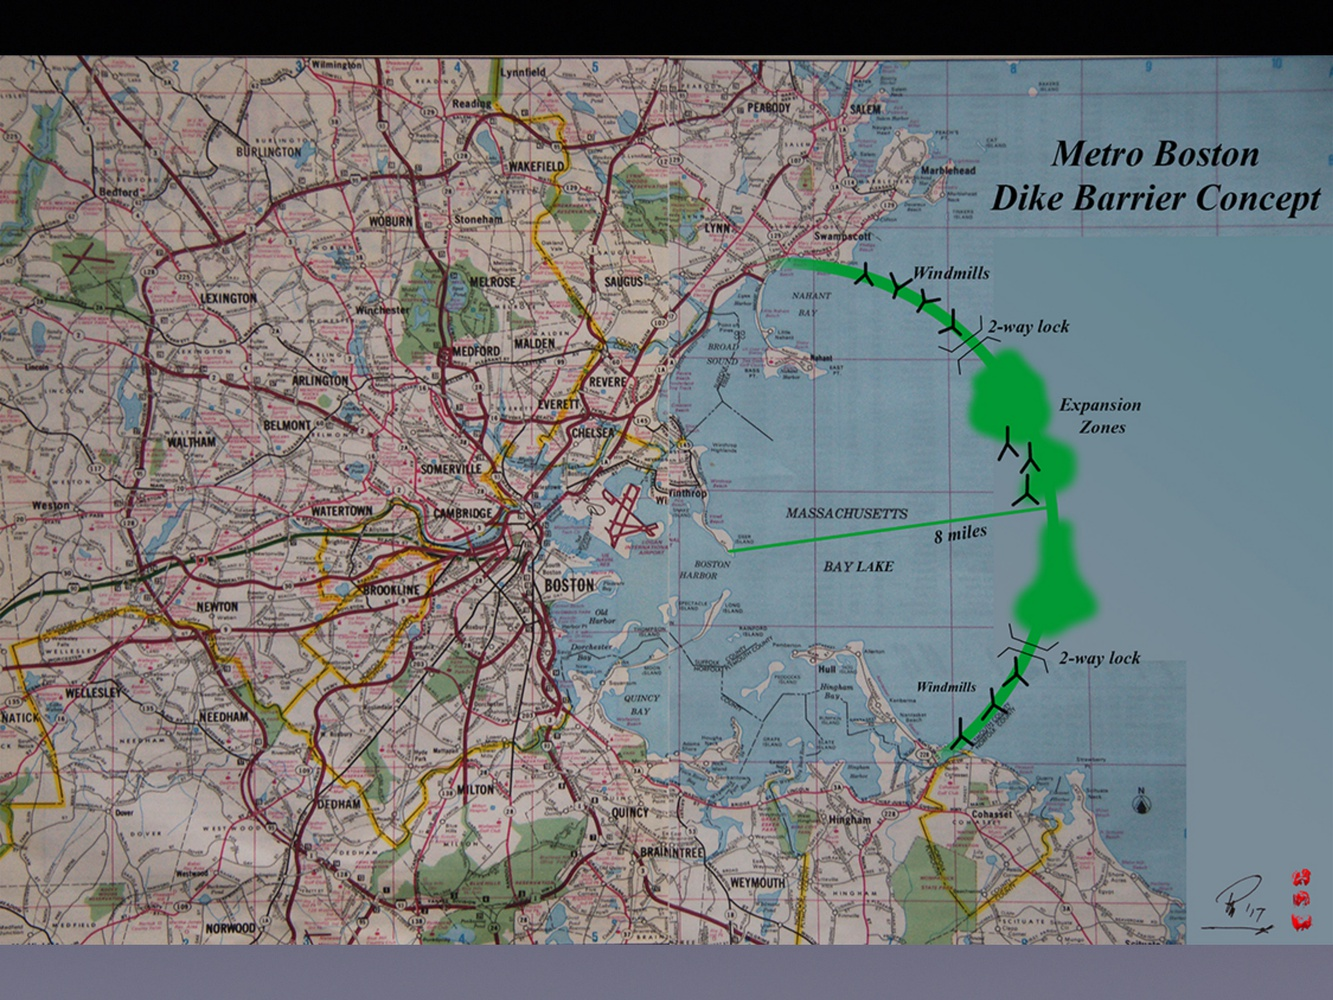 Architect Peter P. Papesch '60 proposed a $50 to $80 billion dike barrier megaproject to defend against sea level rise that would encircle the Boston area from Lynn to Hingham, Mass.